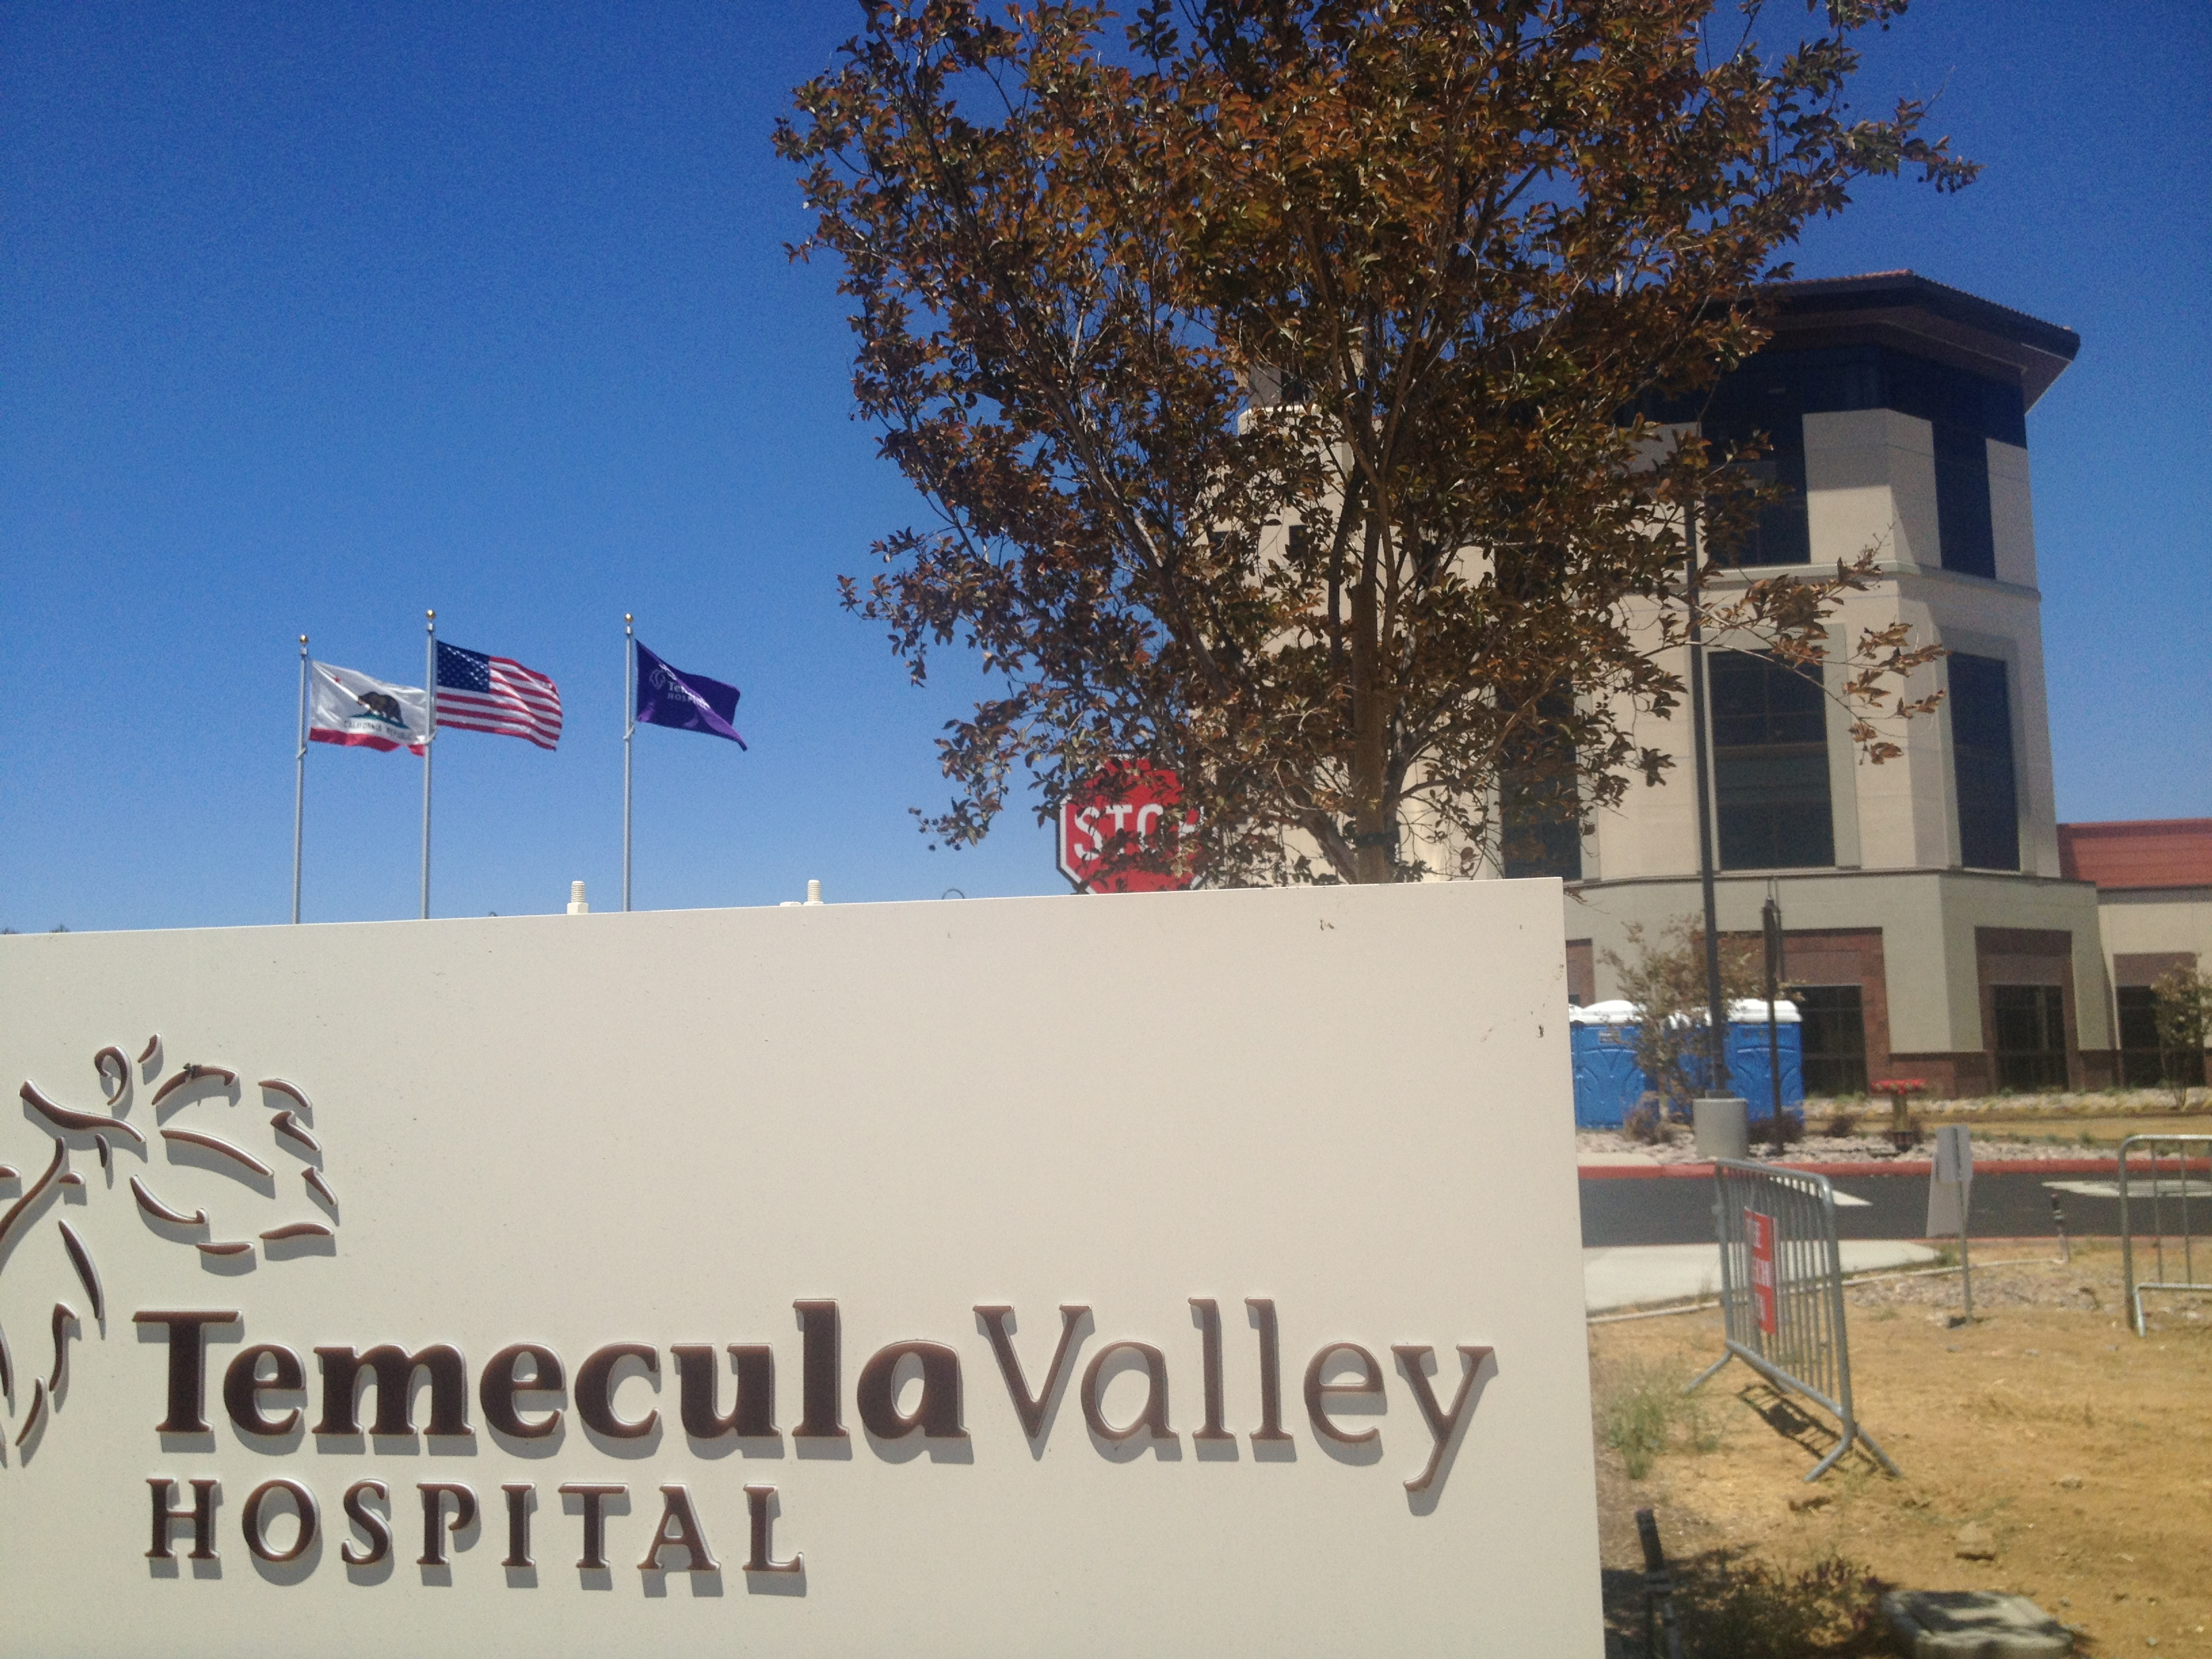 Temecula Valley Hospital Welcomes Community In Fun Family Fair